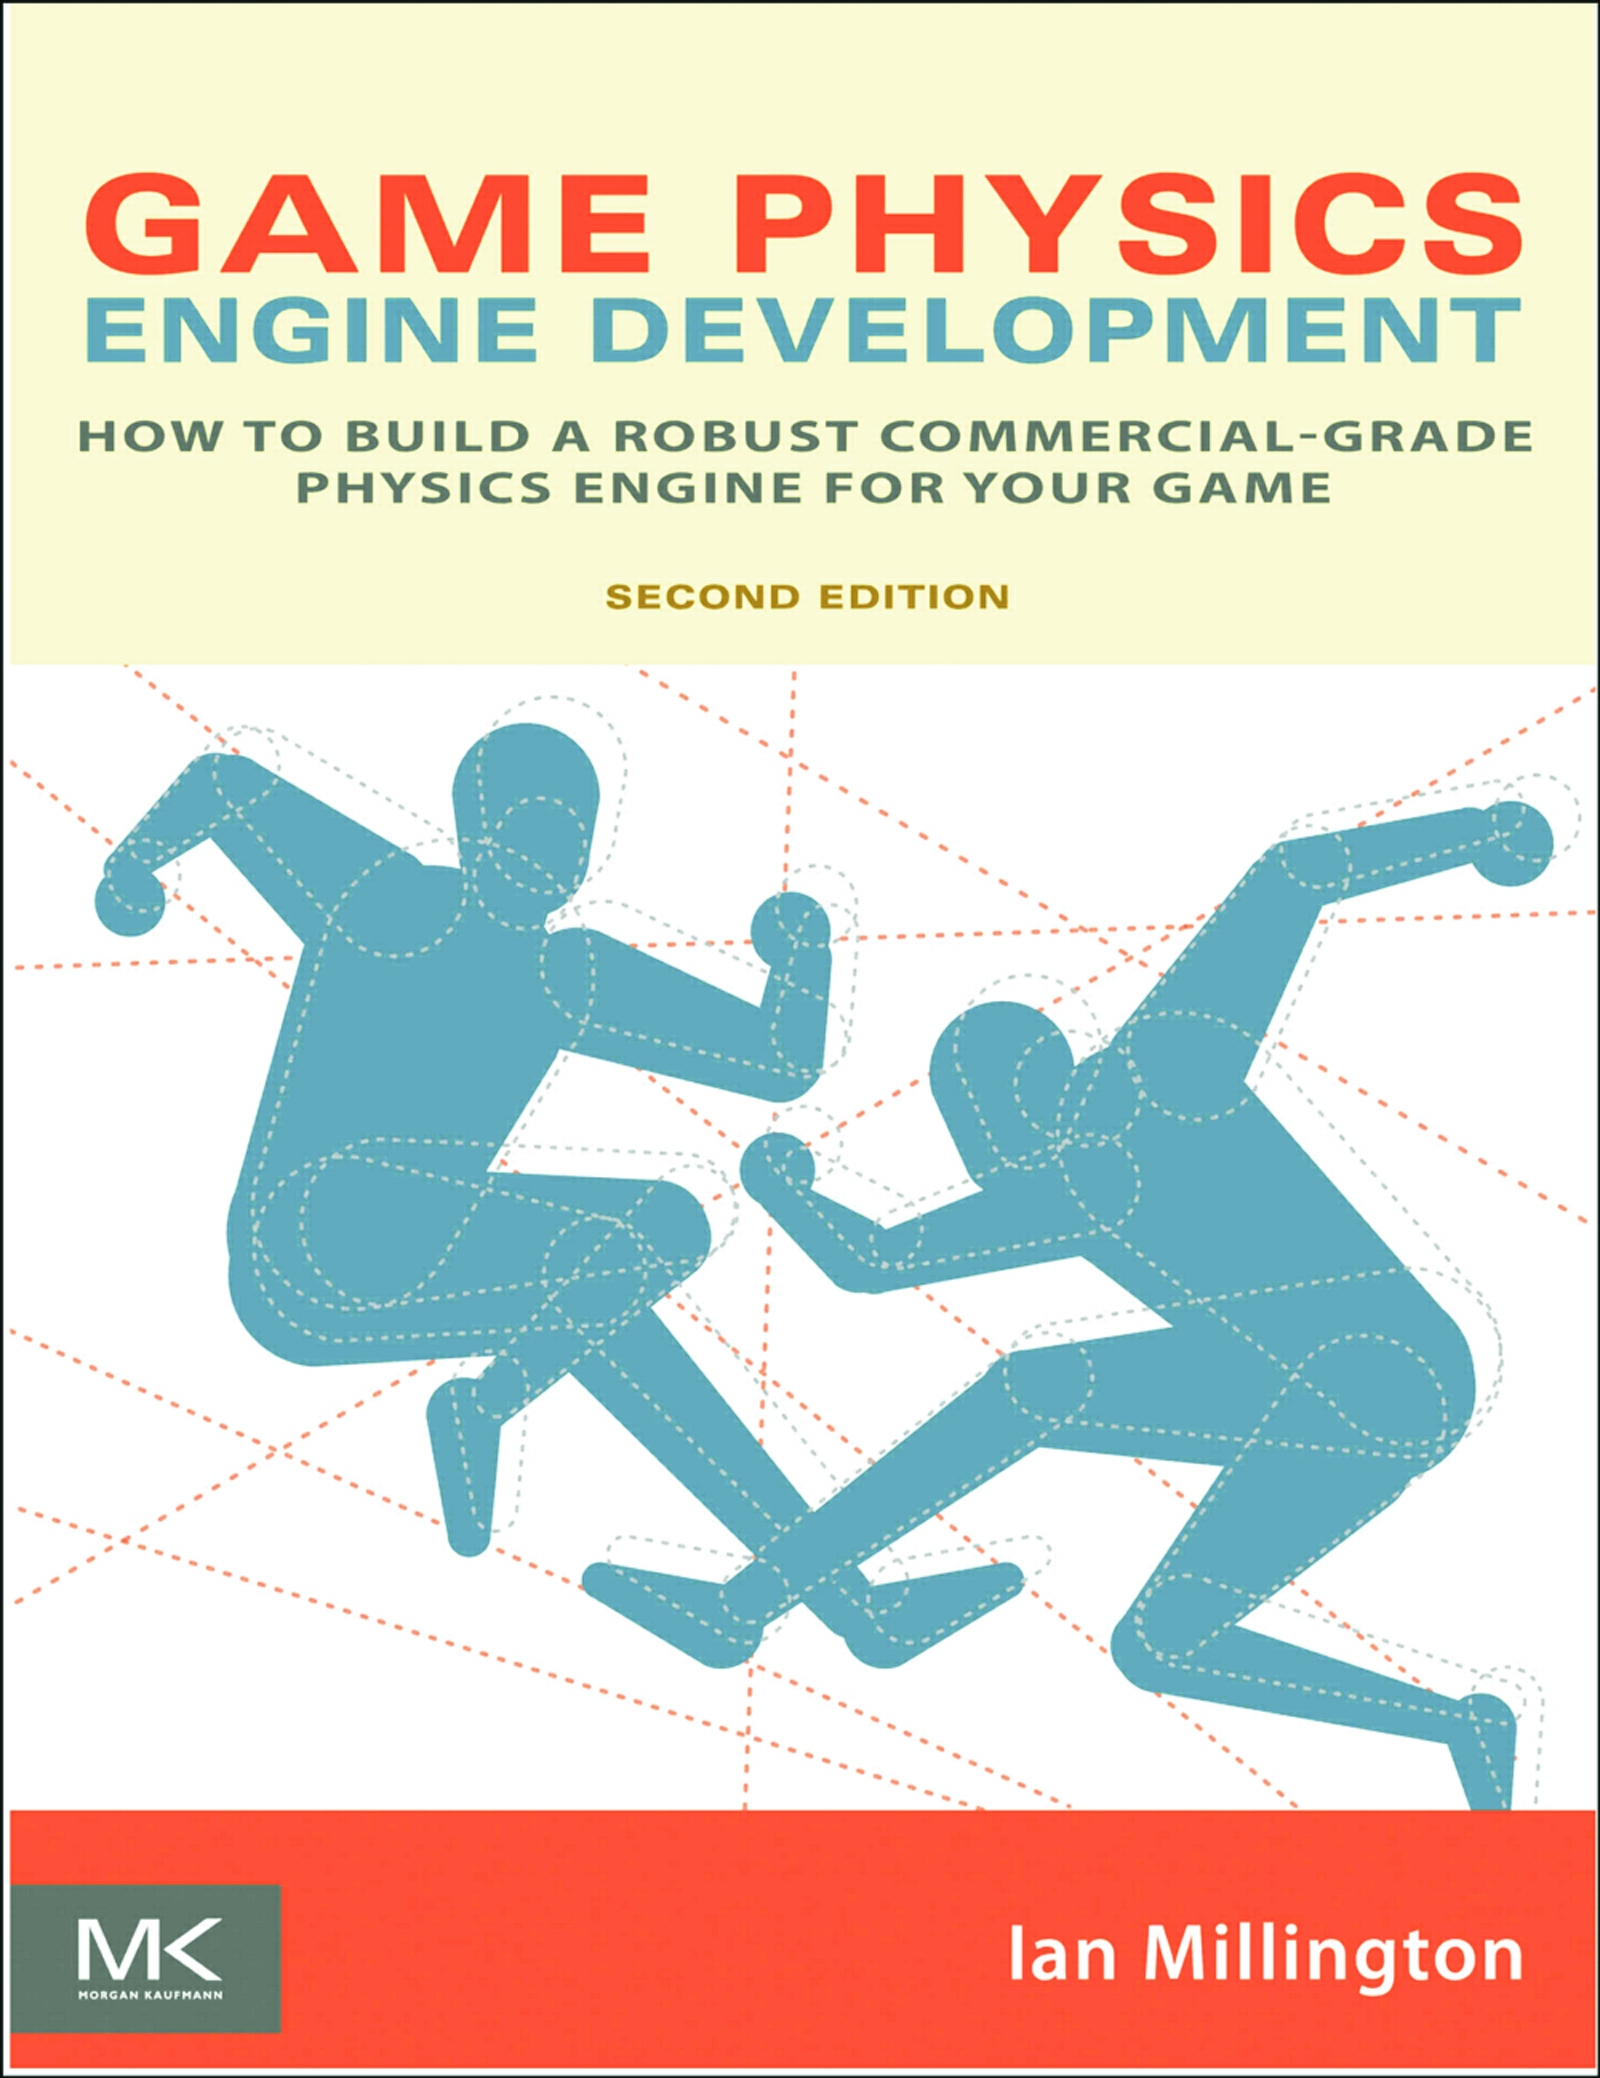 Game Physics Engine Development: How to Build a Robust Commercial-Grade Physics Engine for your Game book cover